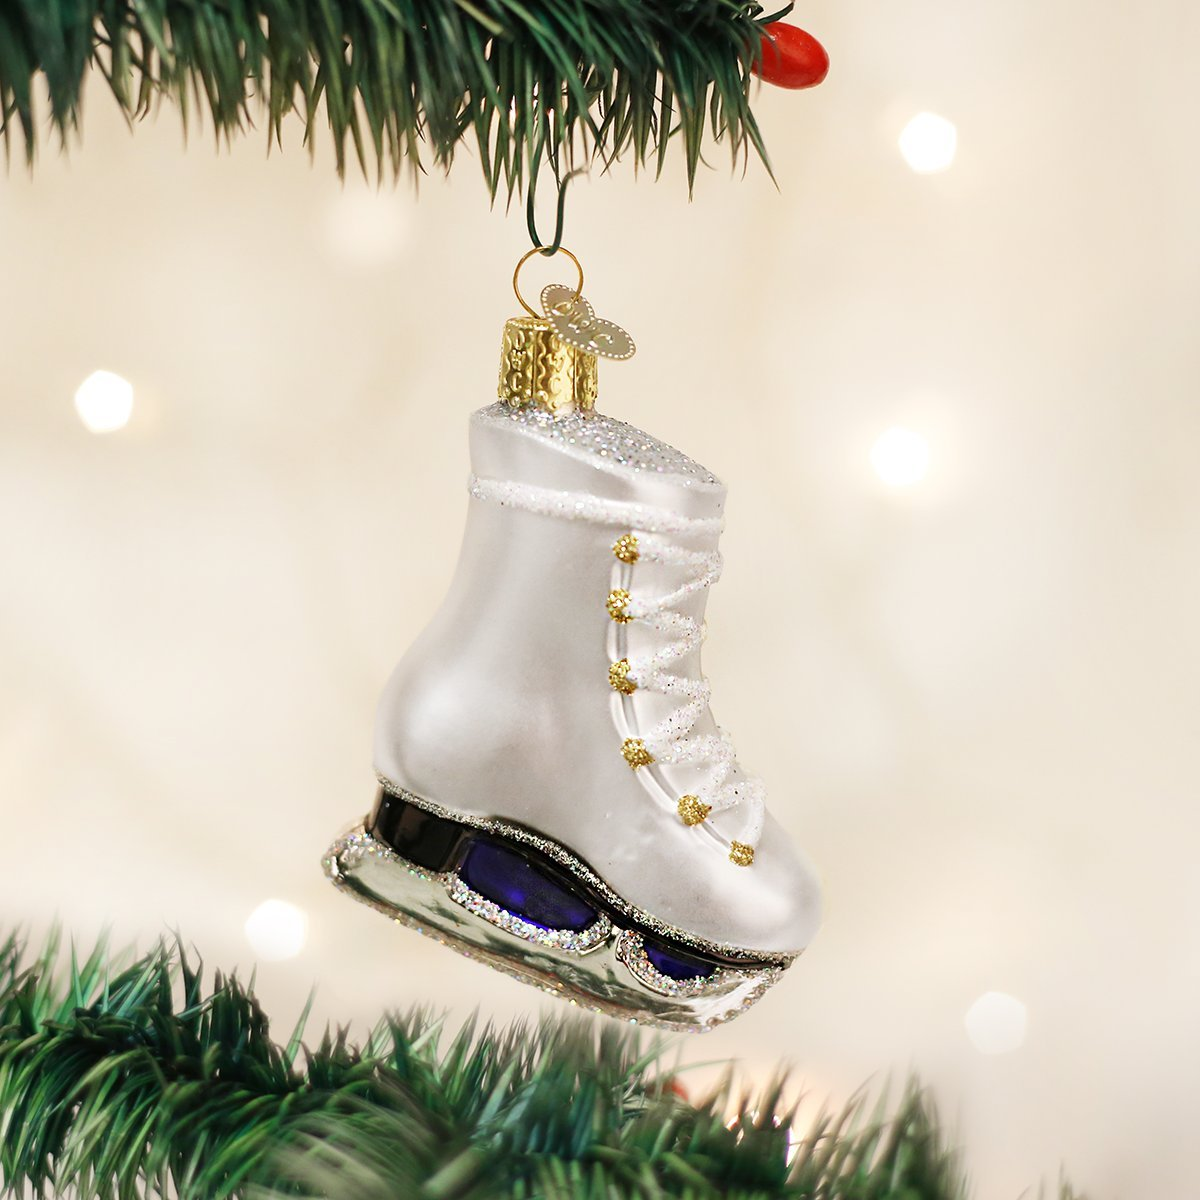 Amazon.com: Old World Christmas Ice Skate Glass Blown Ornament: Home ...